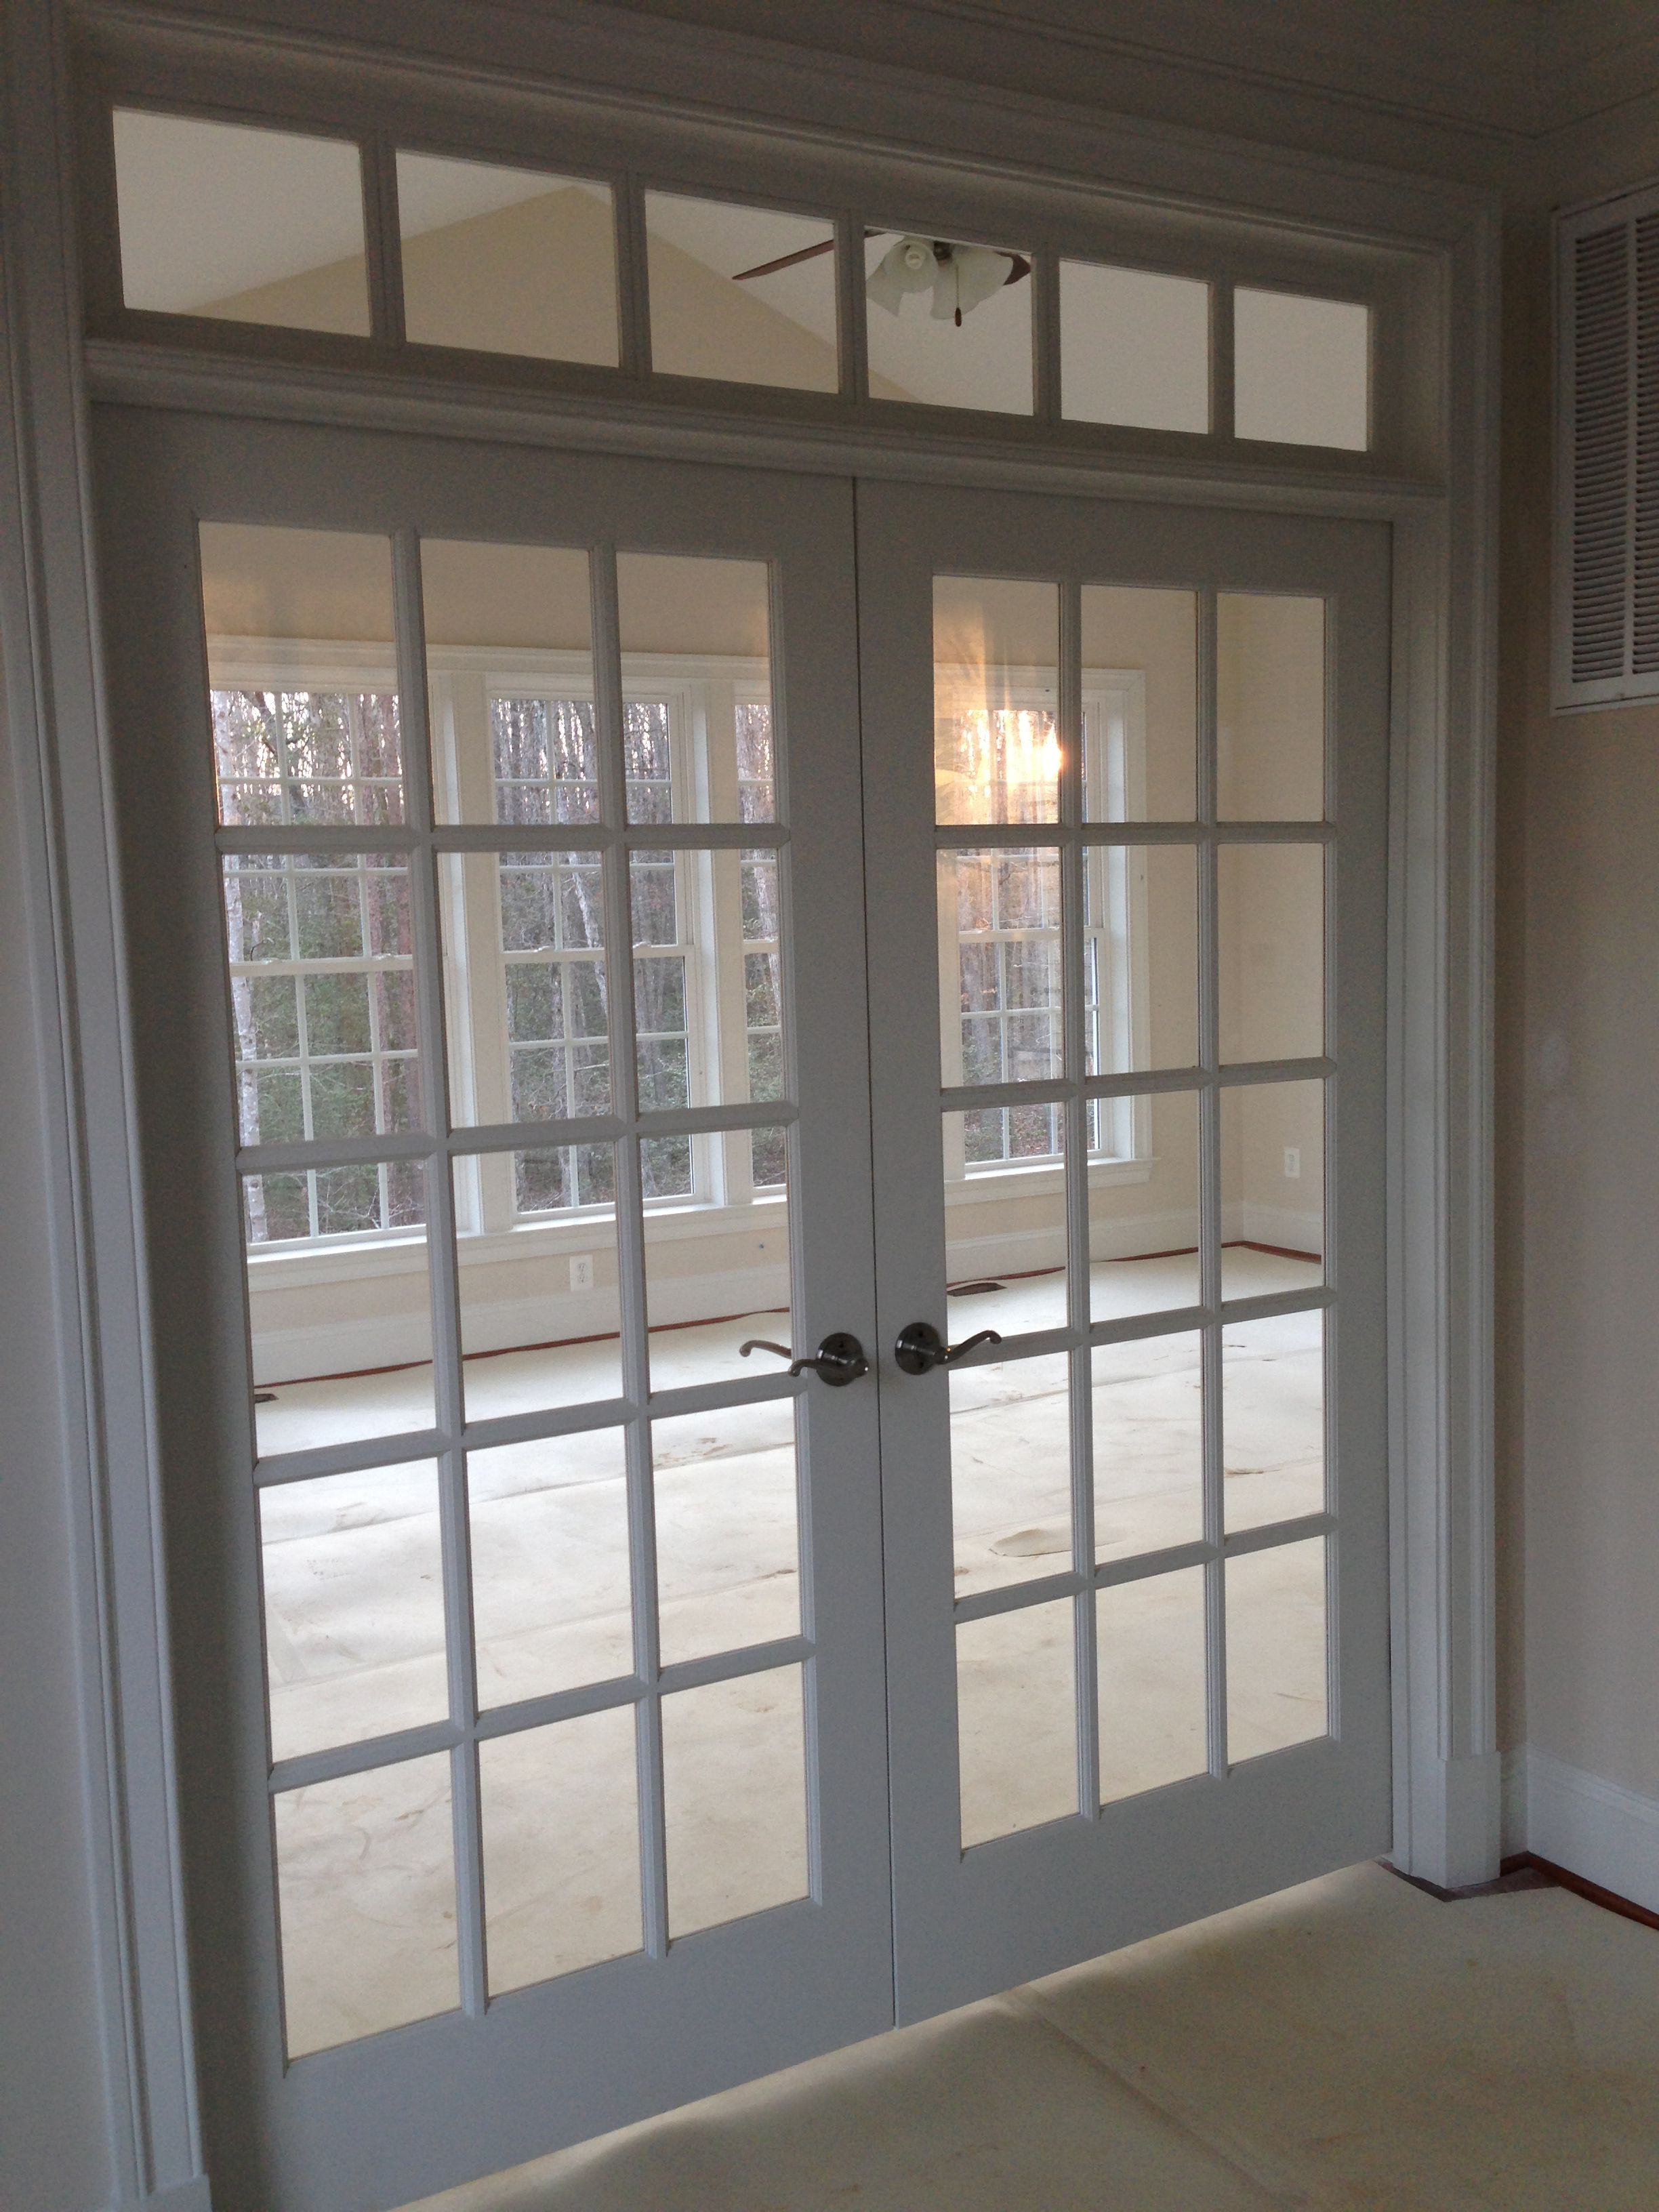 Back Porch Additions Best Ideas About Room Additions On House Additions Interior Designs: Porch To Sunroom, New Homes, Sunroom